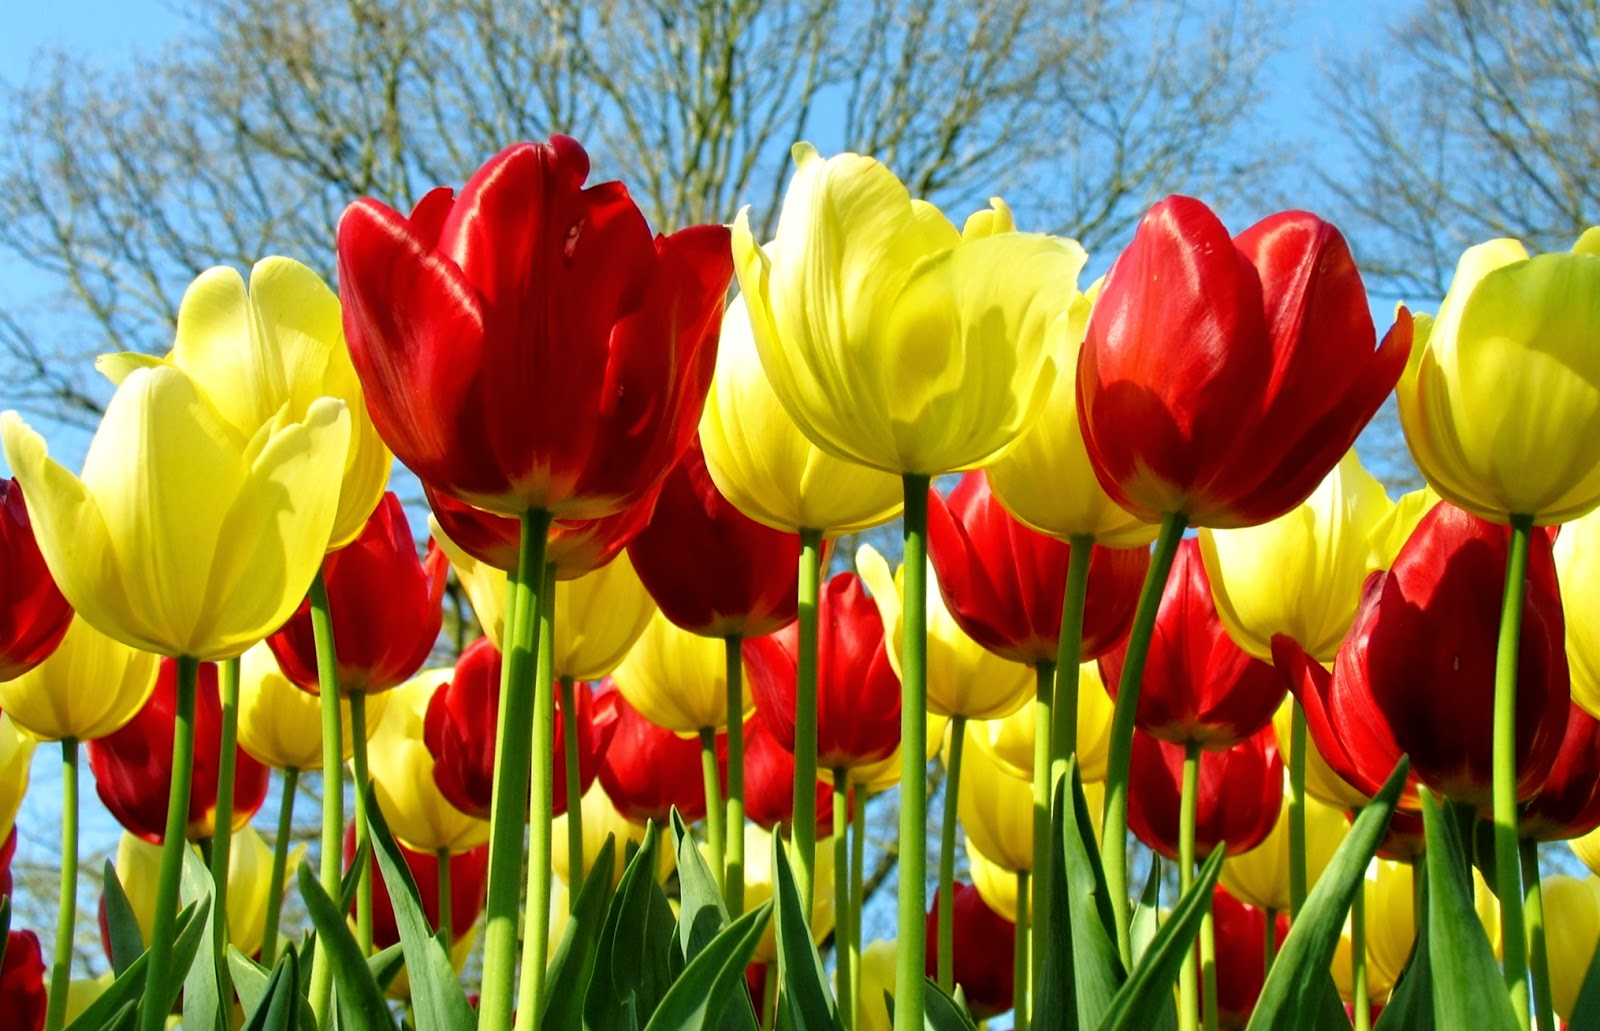 Wallpaper Gambar Bunga Tulips